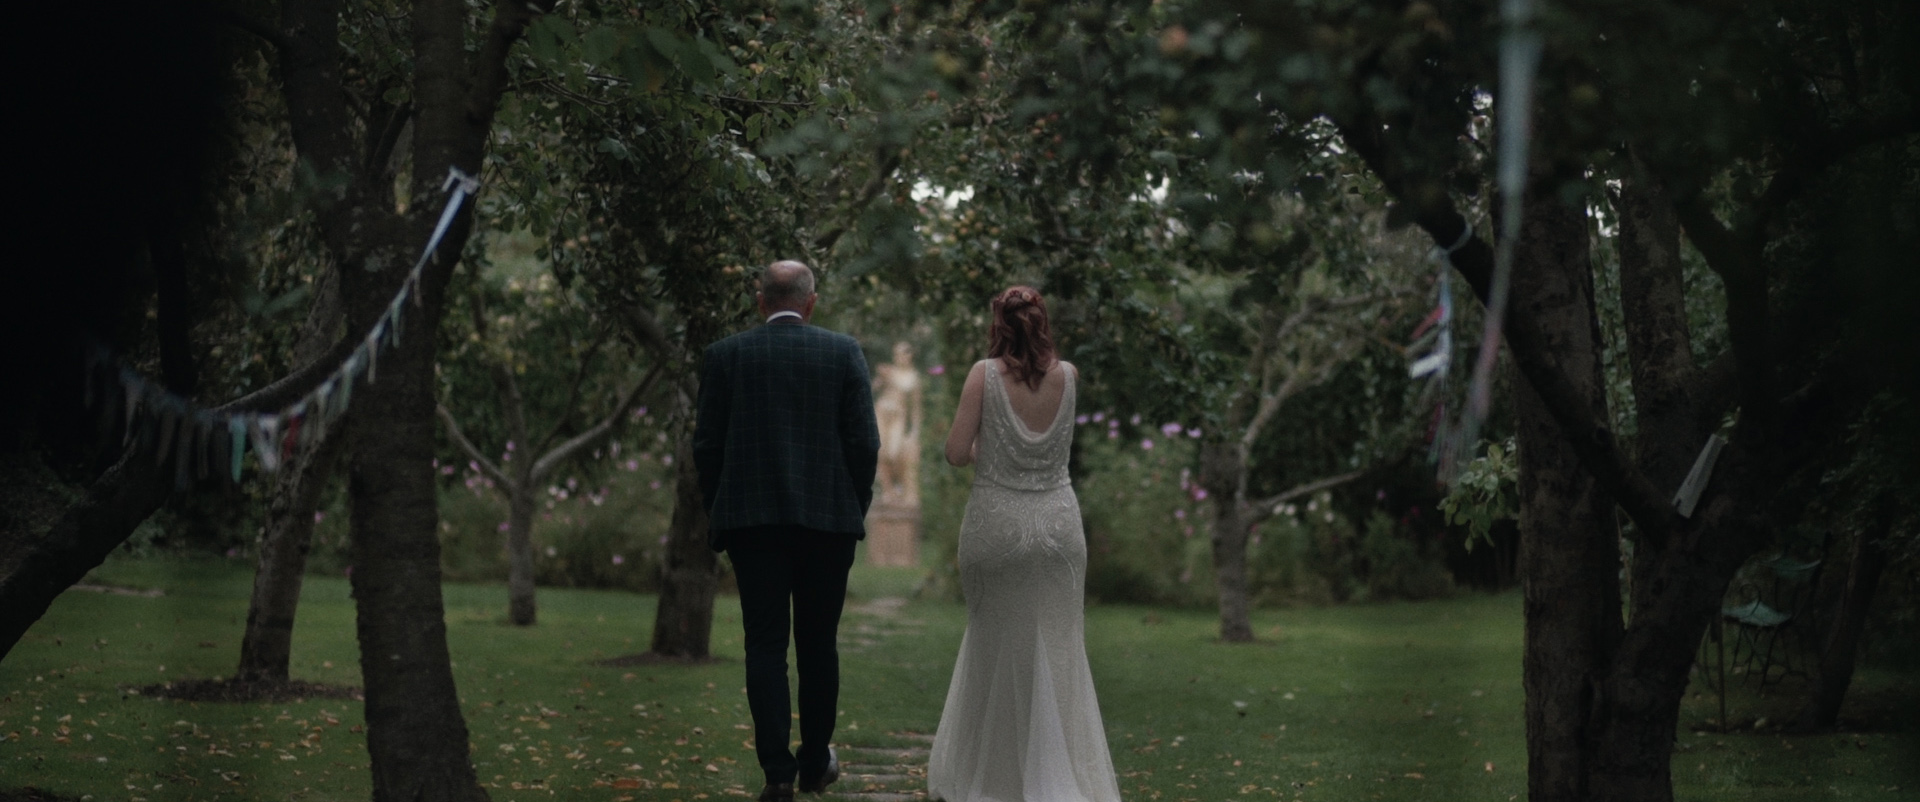 moon+river+wedding+film+videography+north+east+durham+crook+hall